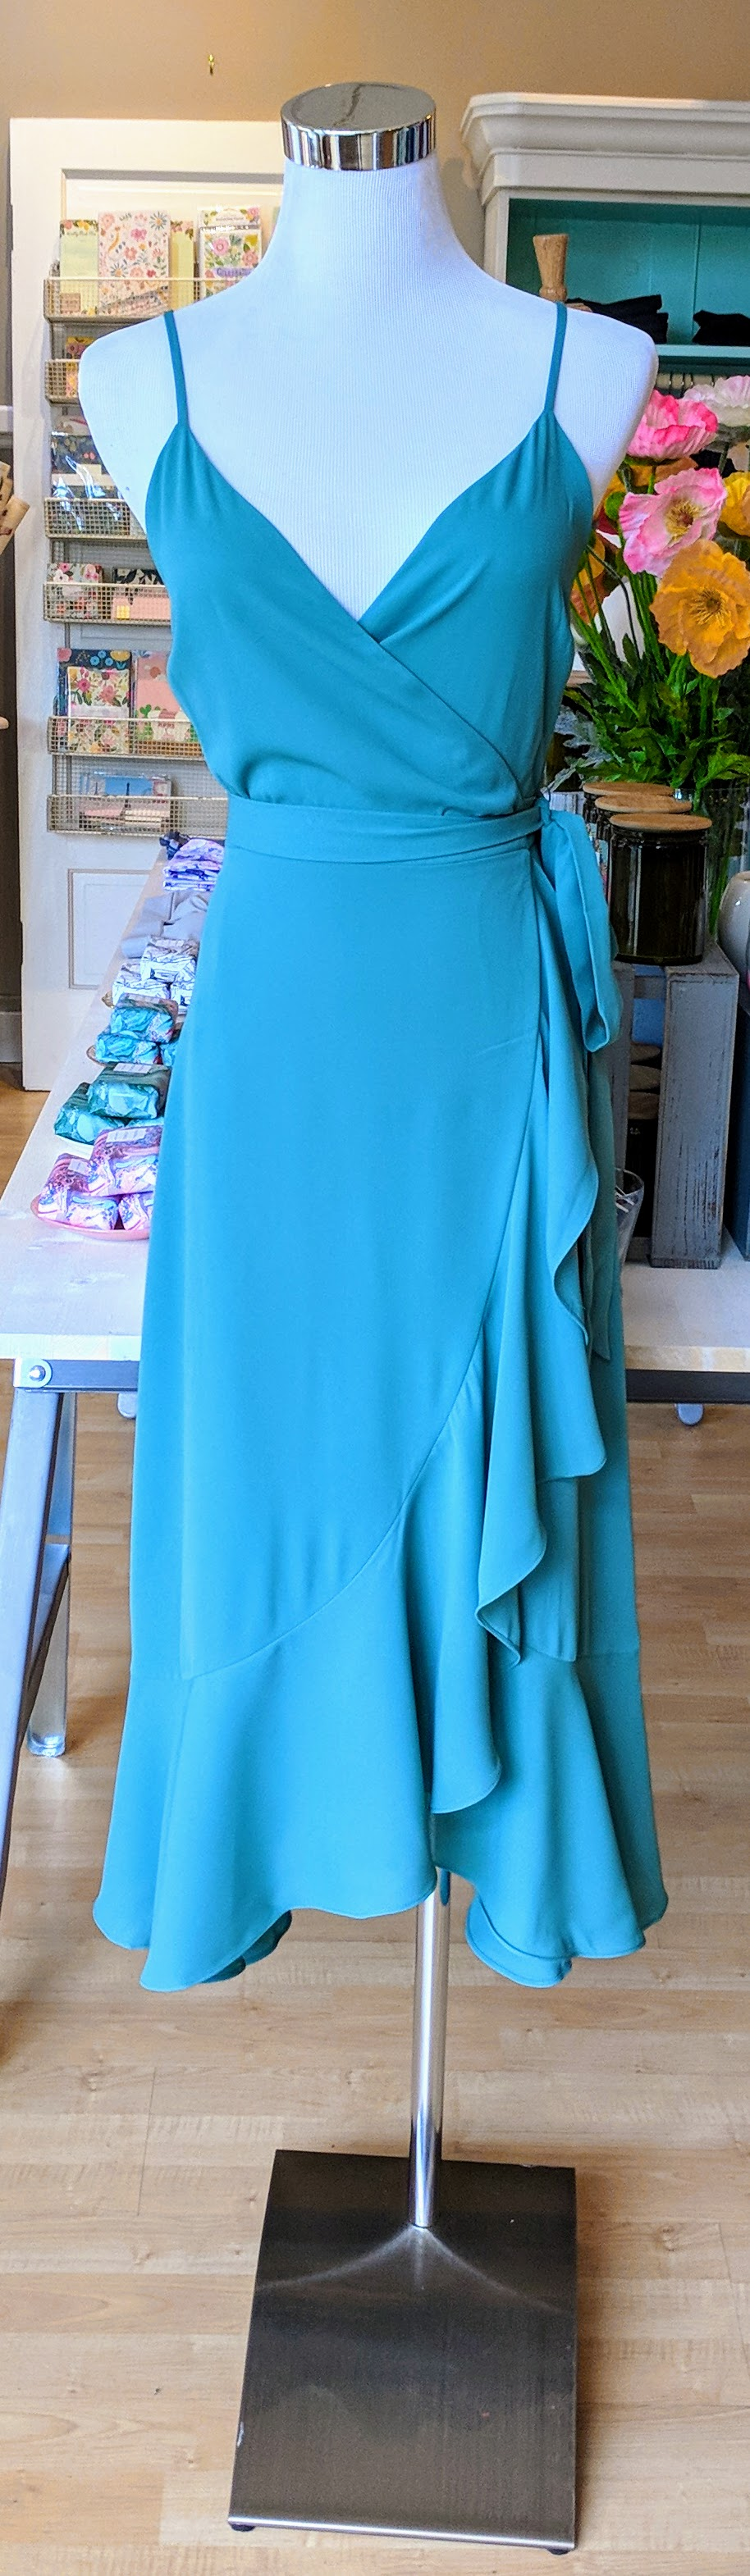 Sea Green wrap dress with tie waist.